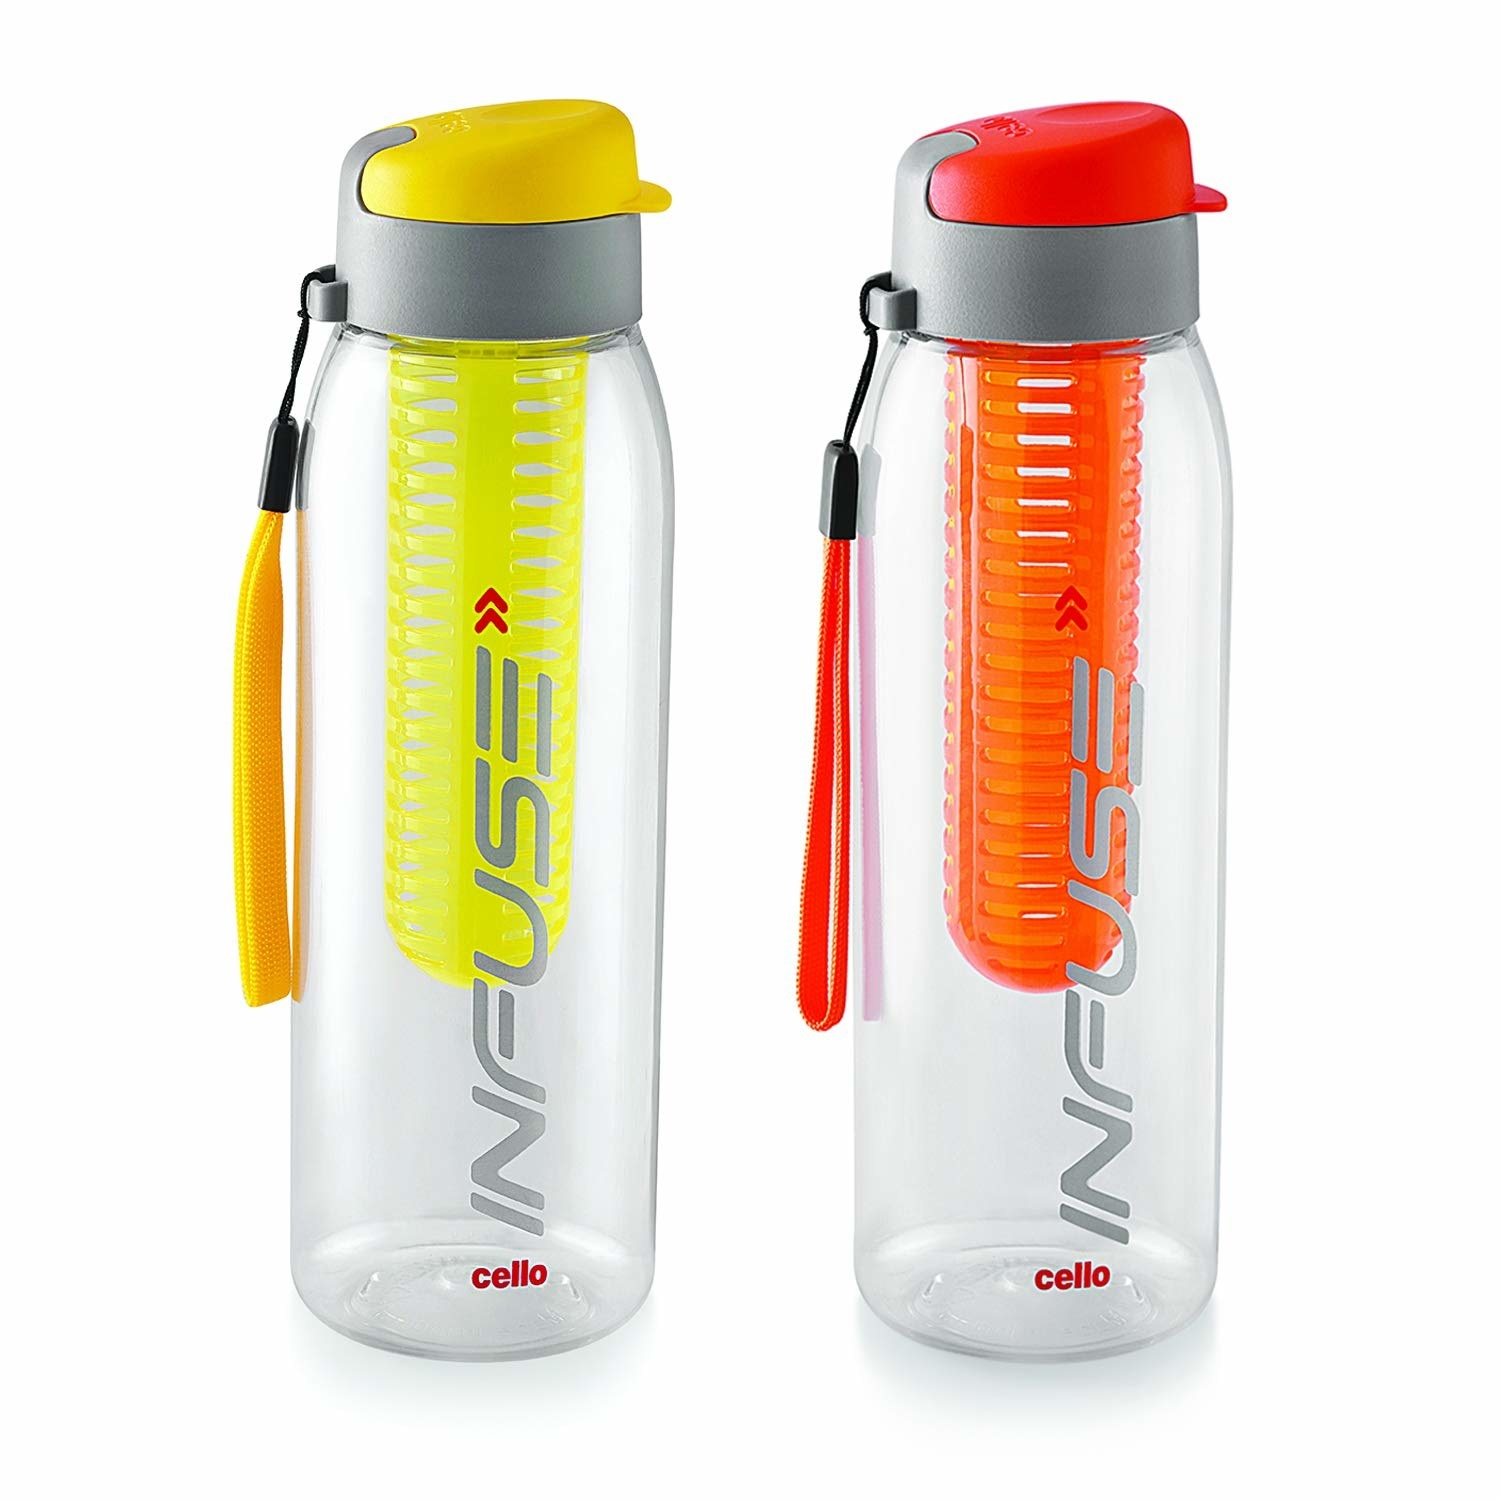 A yellow and orange infuser bottle